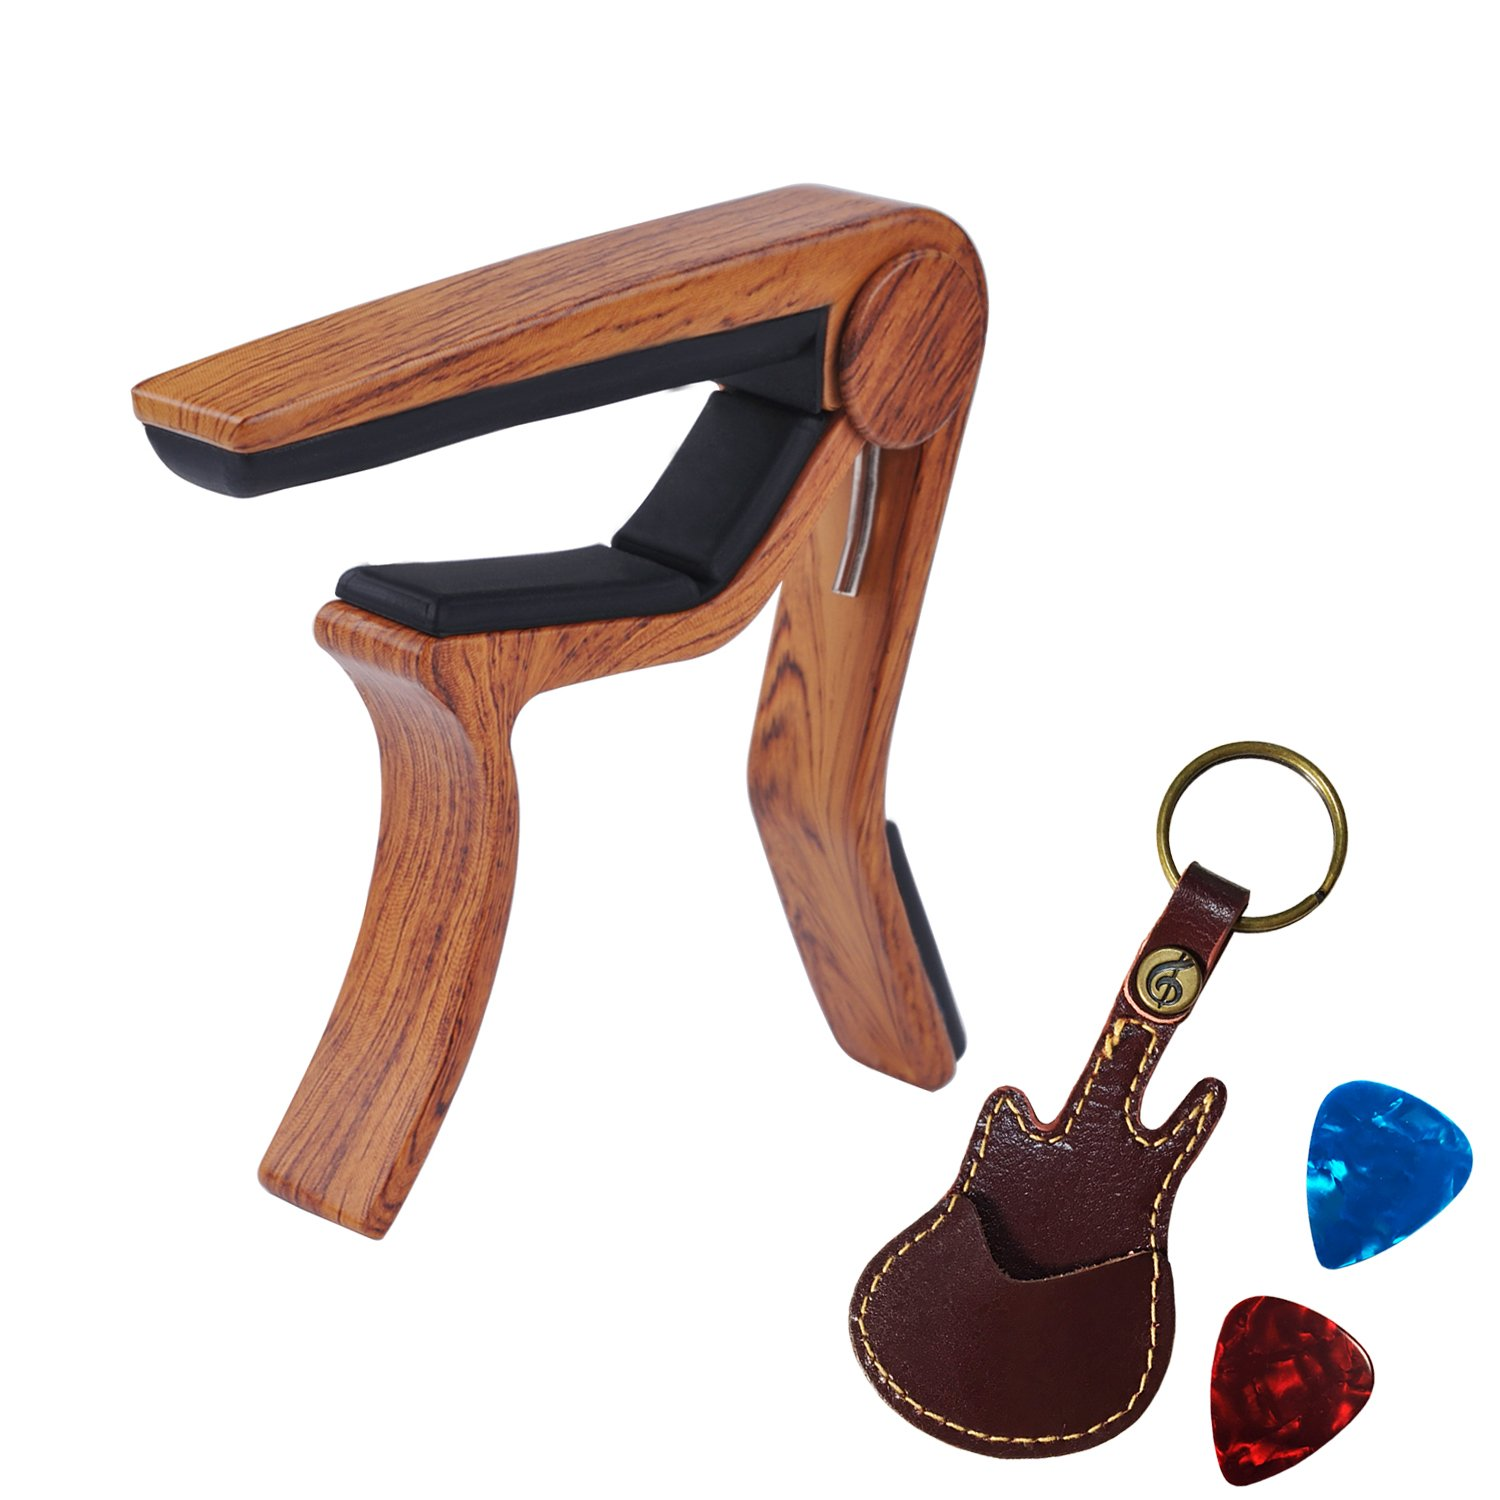 New Guitar Capo, Libershine Trigger Capo/Guitar Picks and Pick Holder Case for Acoustic and Electric Classical Guitar (Redwood Capo+Pick+Pick Holder)